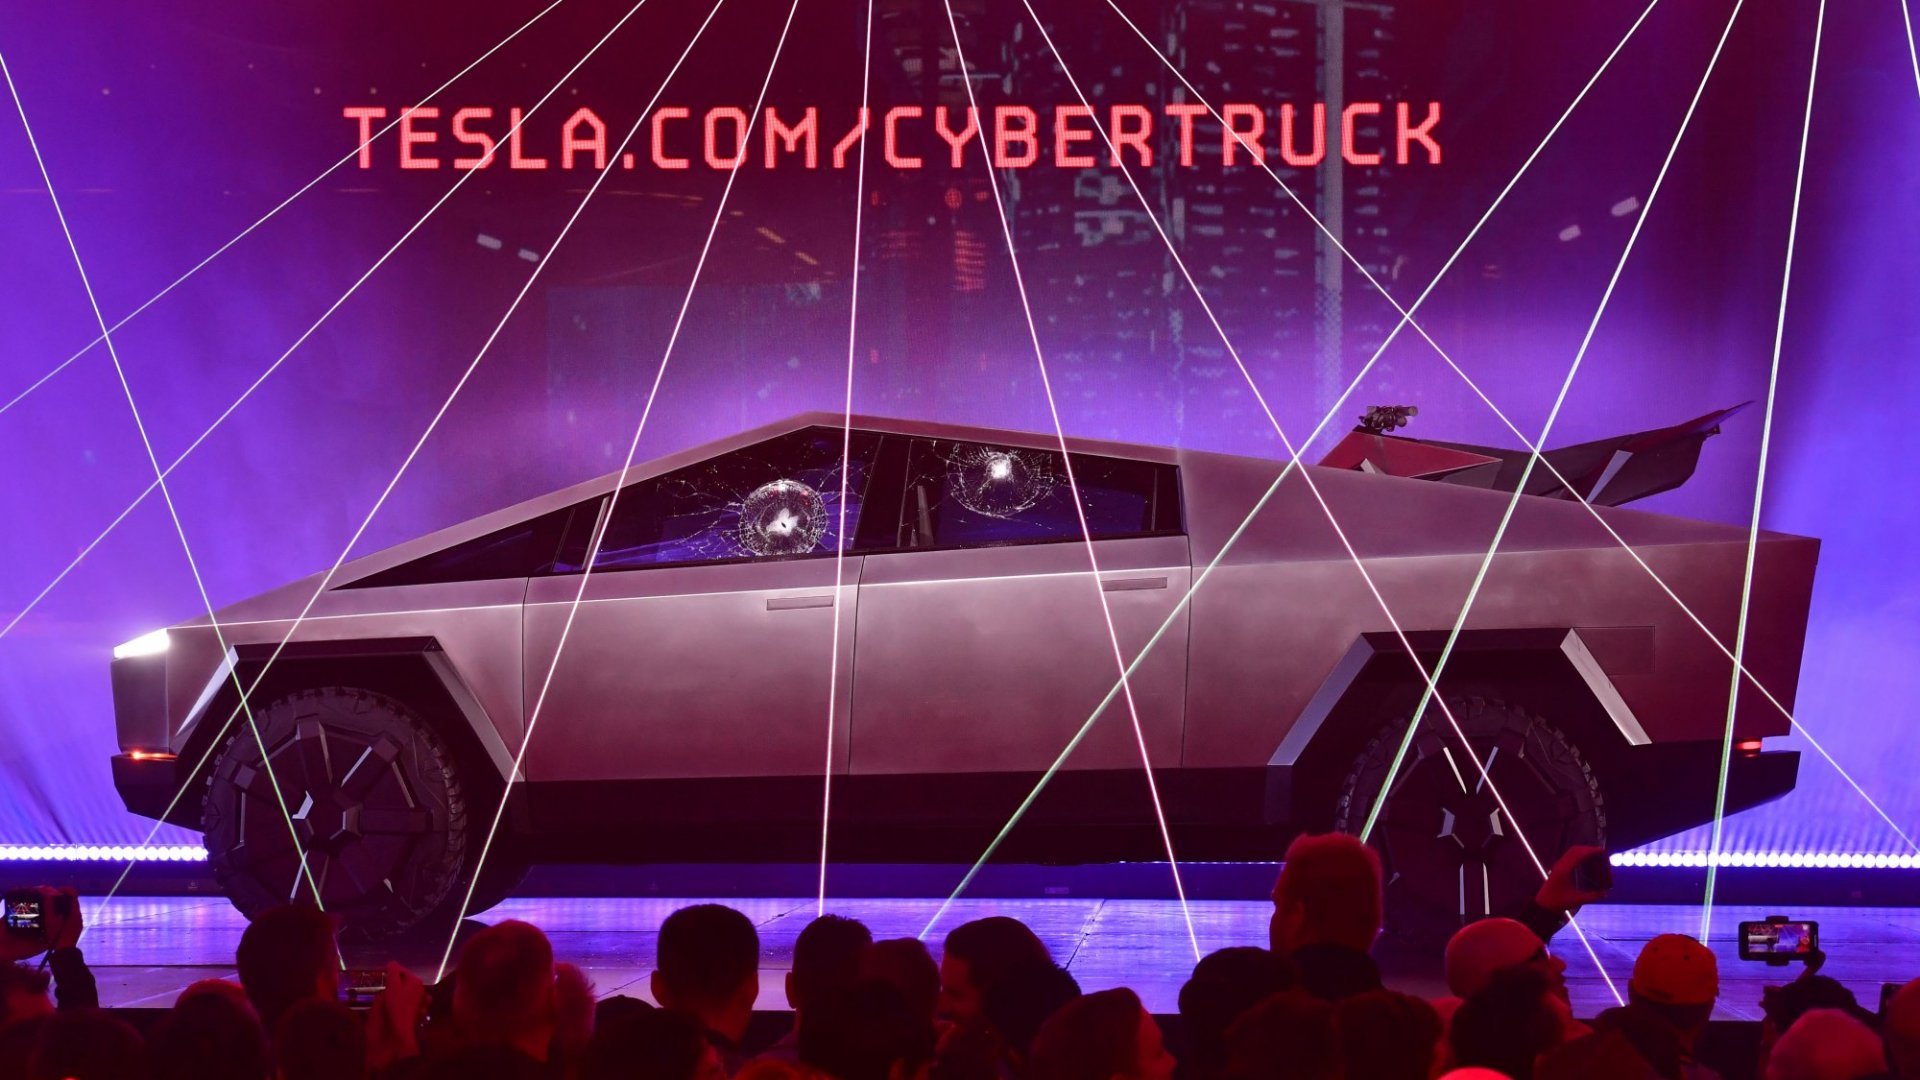 3 Burning Questions For Tesla After Its Big Cybertruck Unveiling